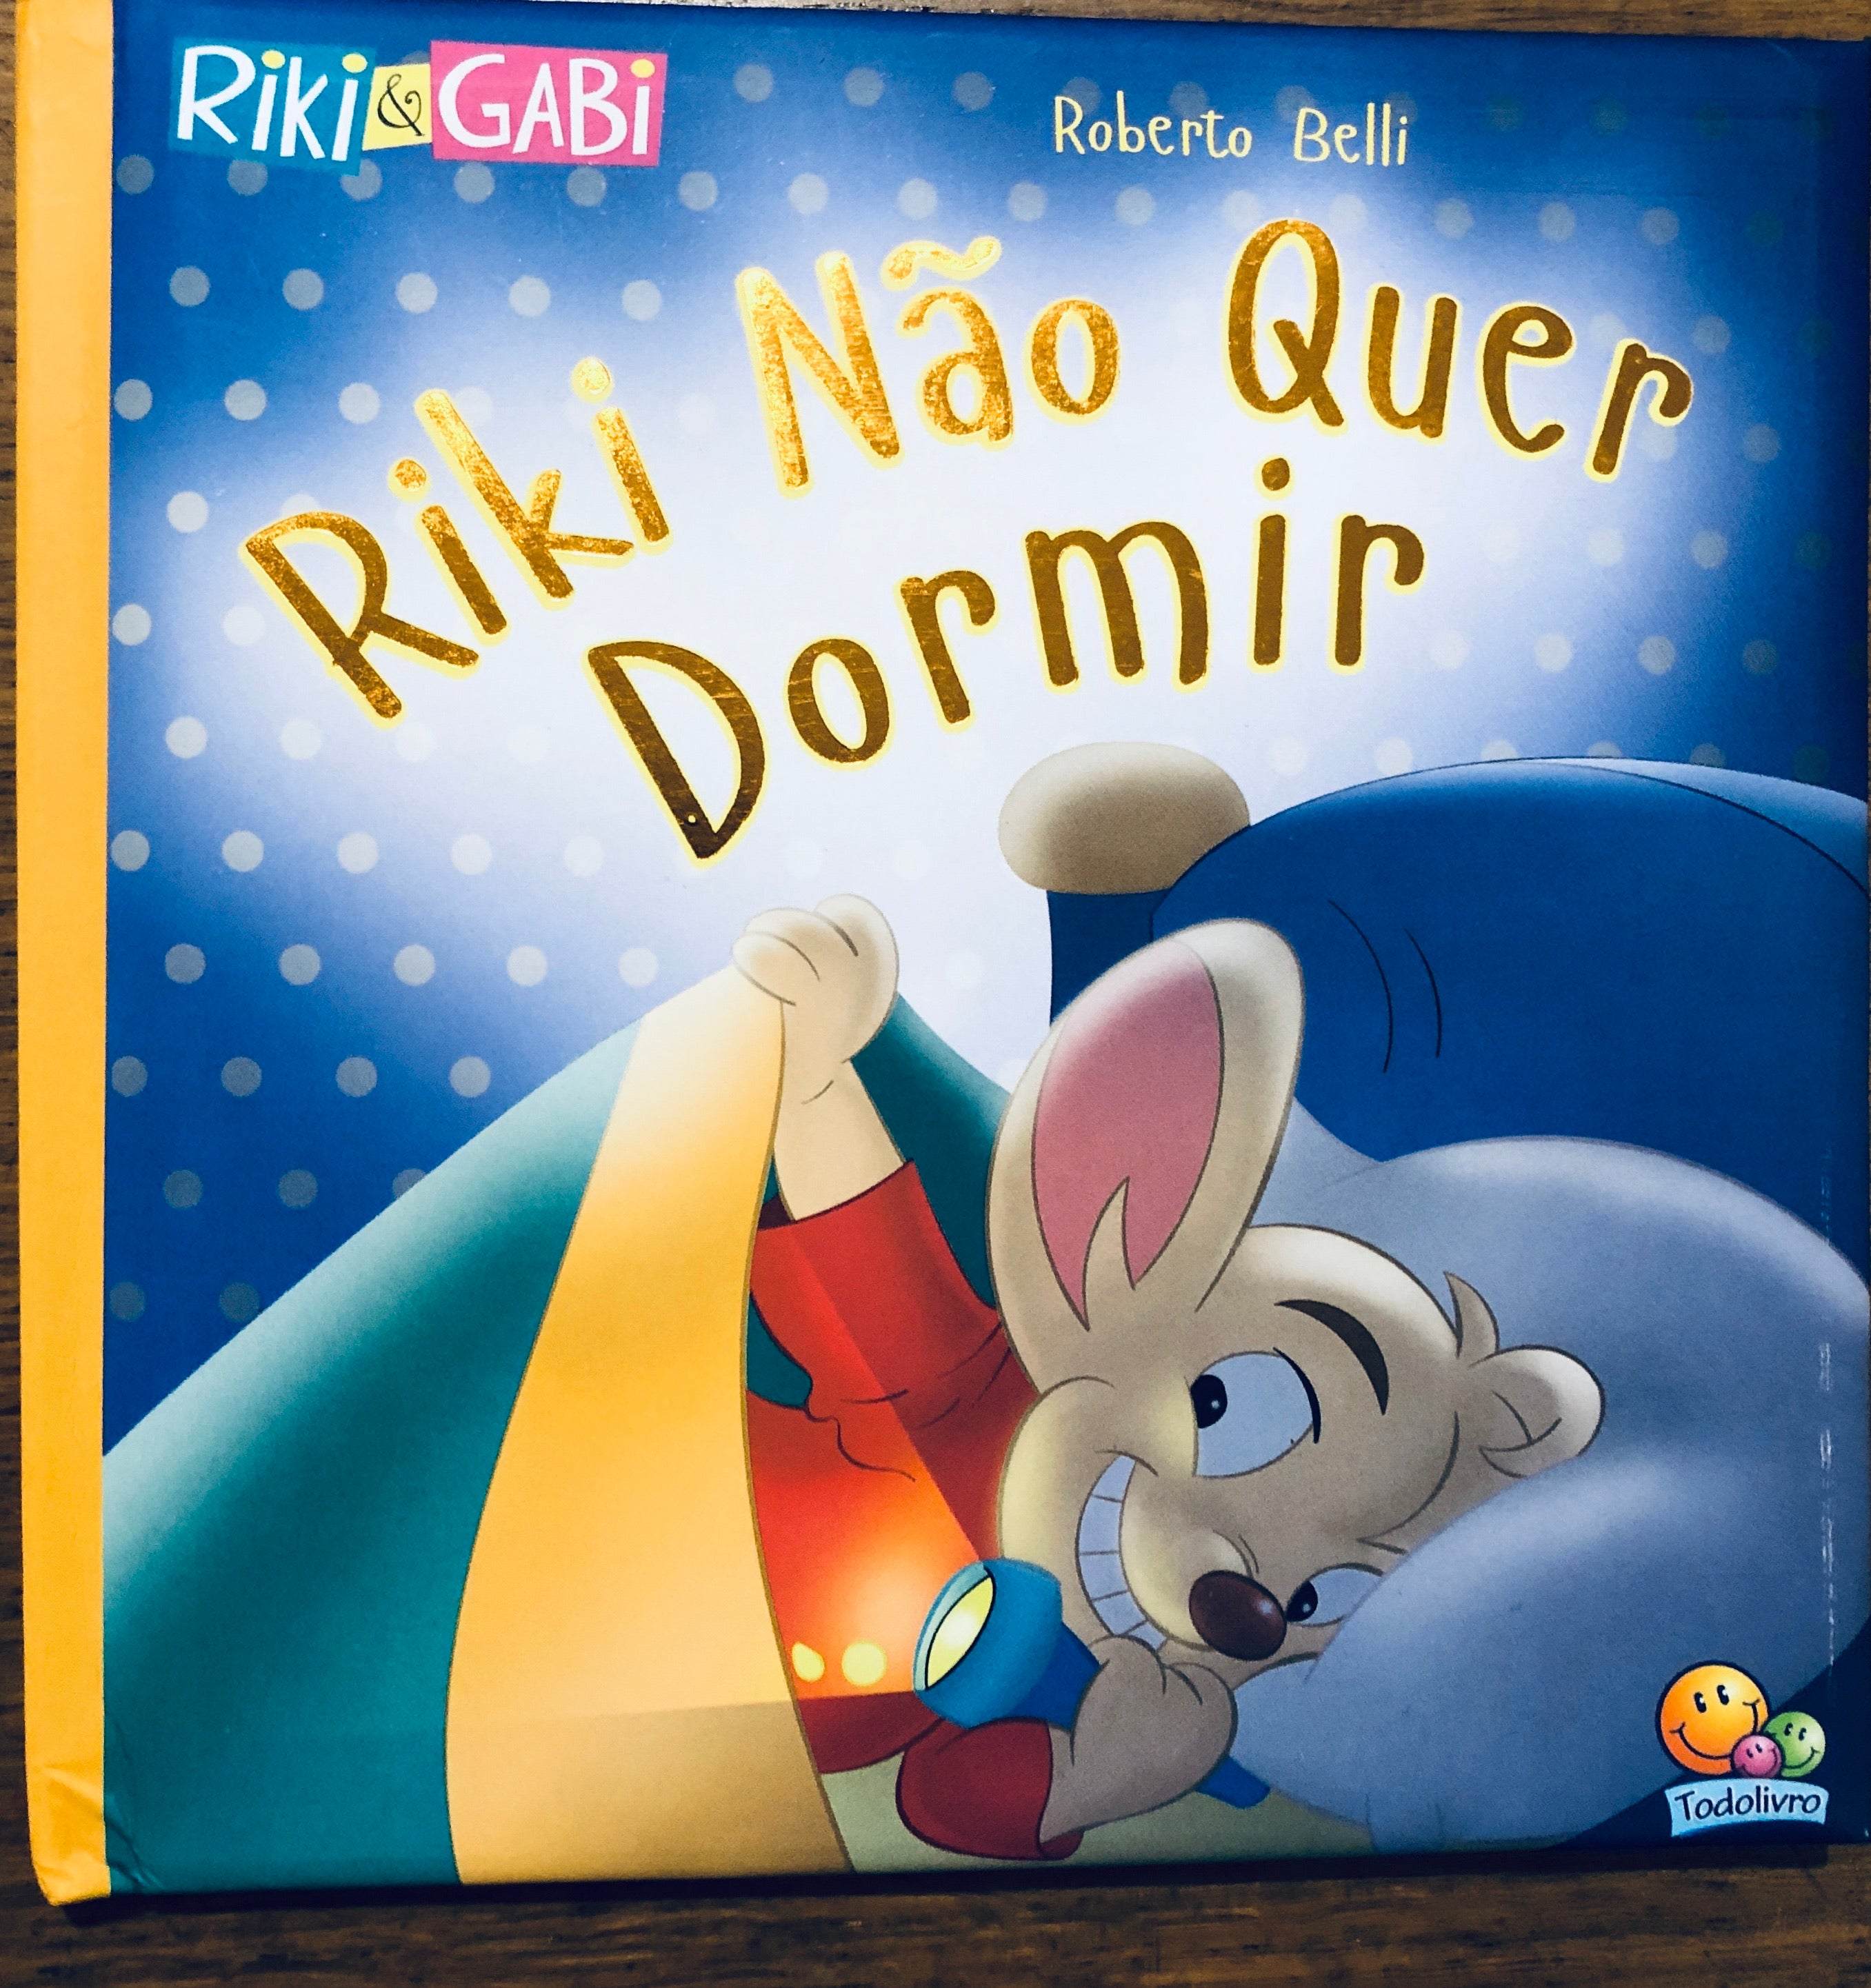 Riki não quer dormir / Riki doesn't want to sleep